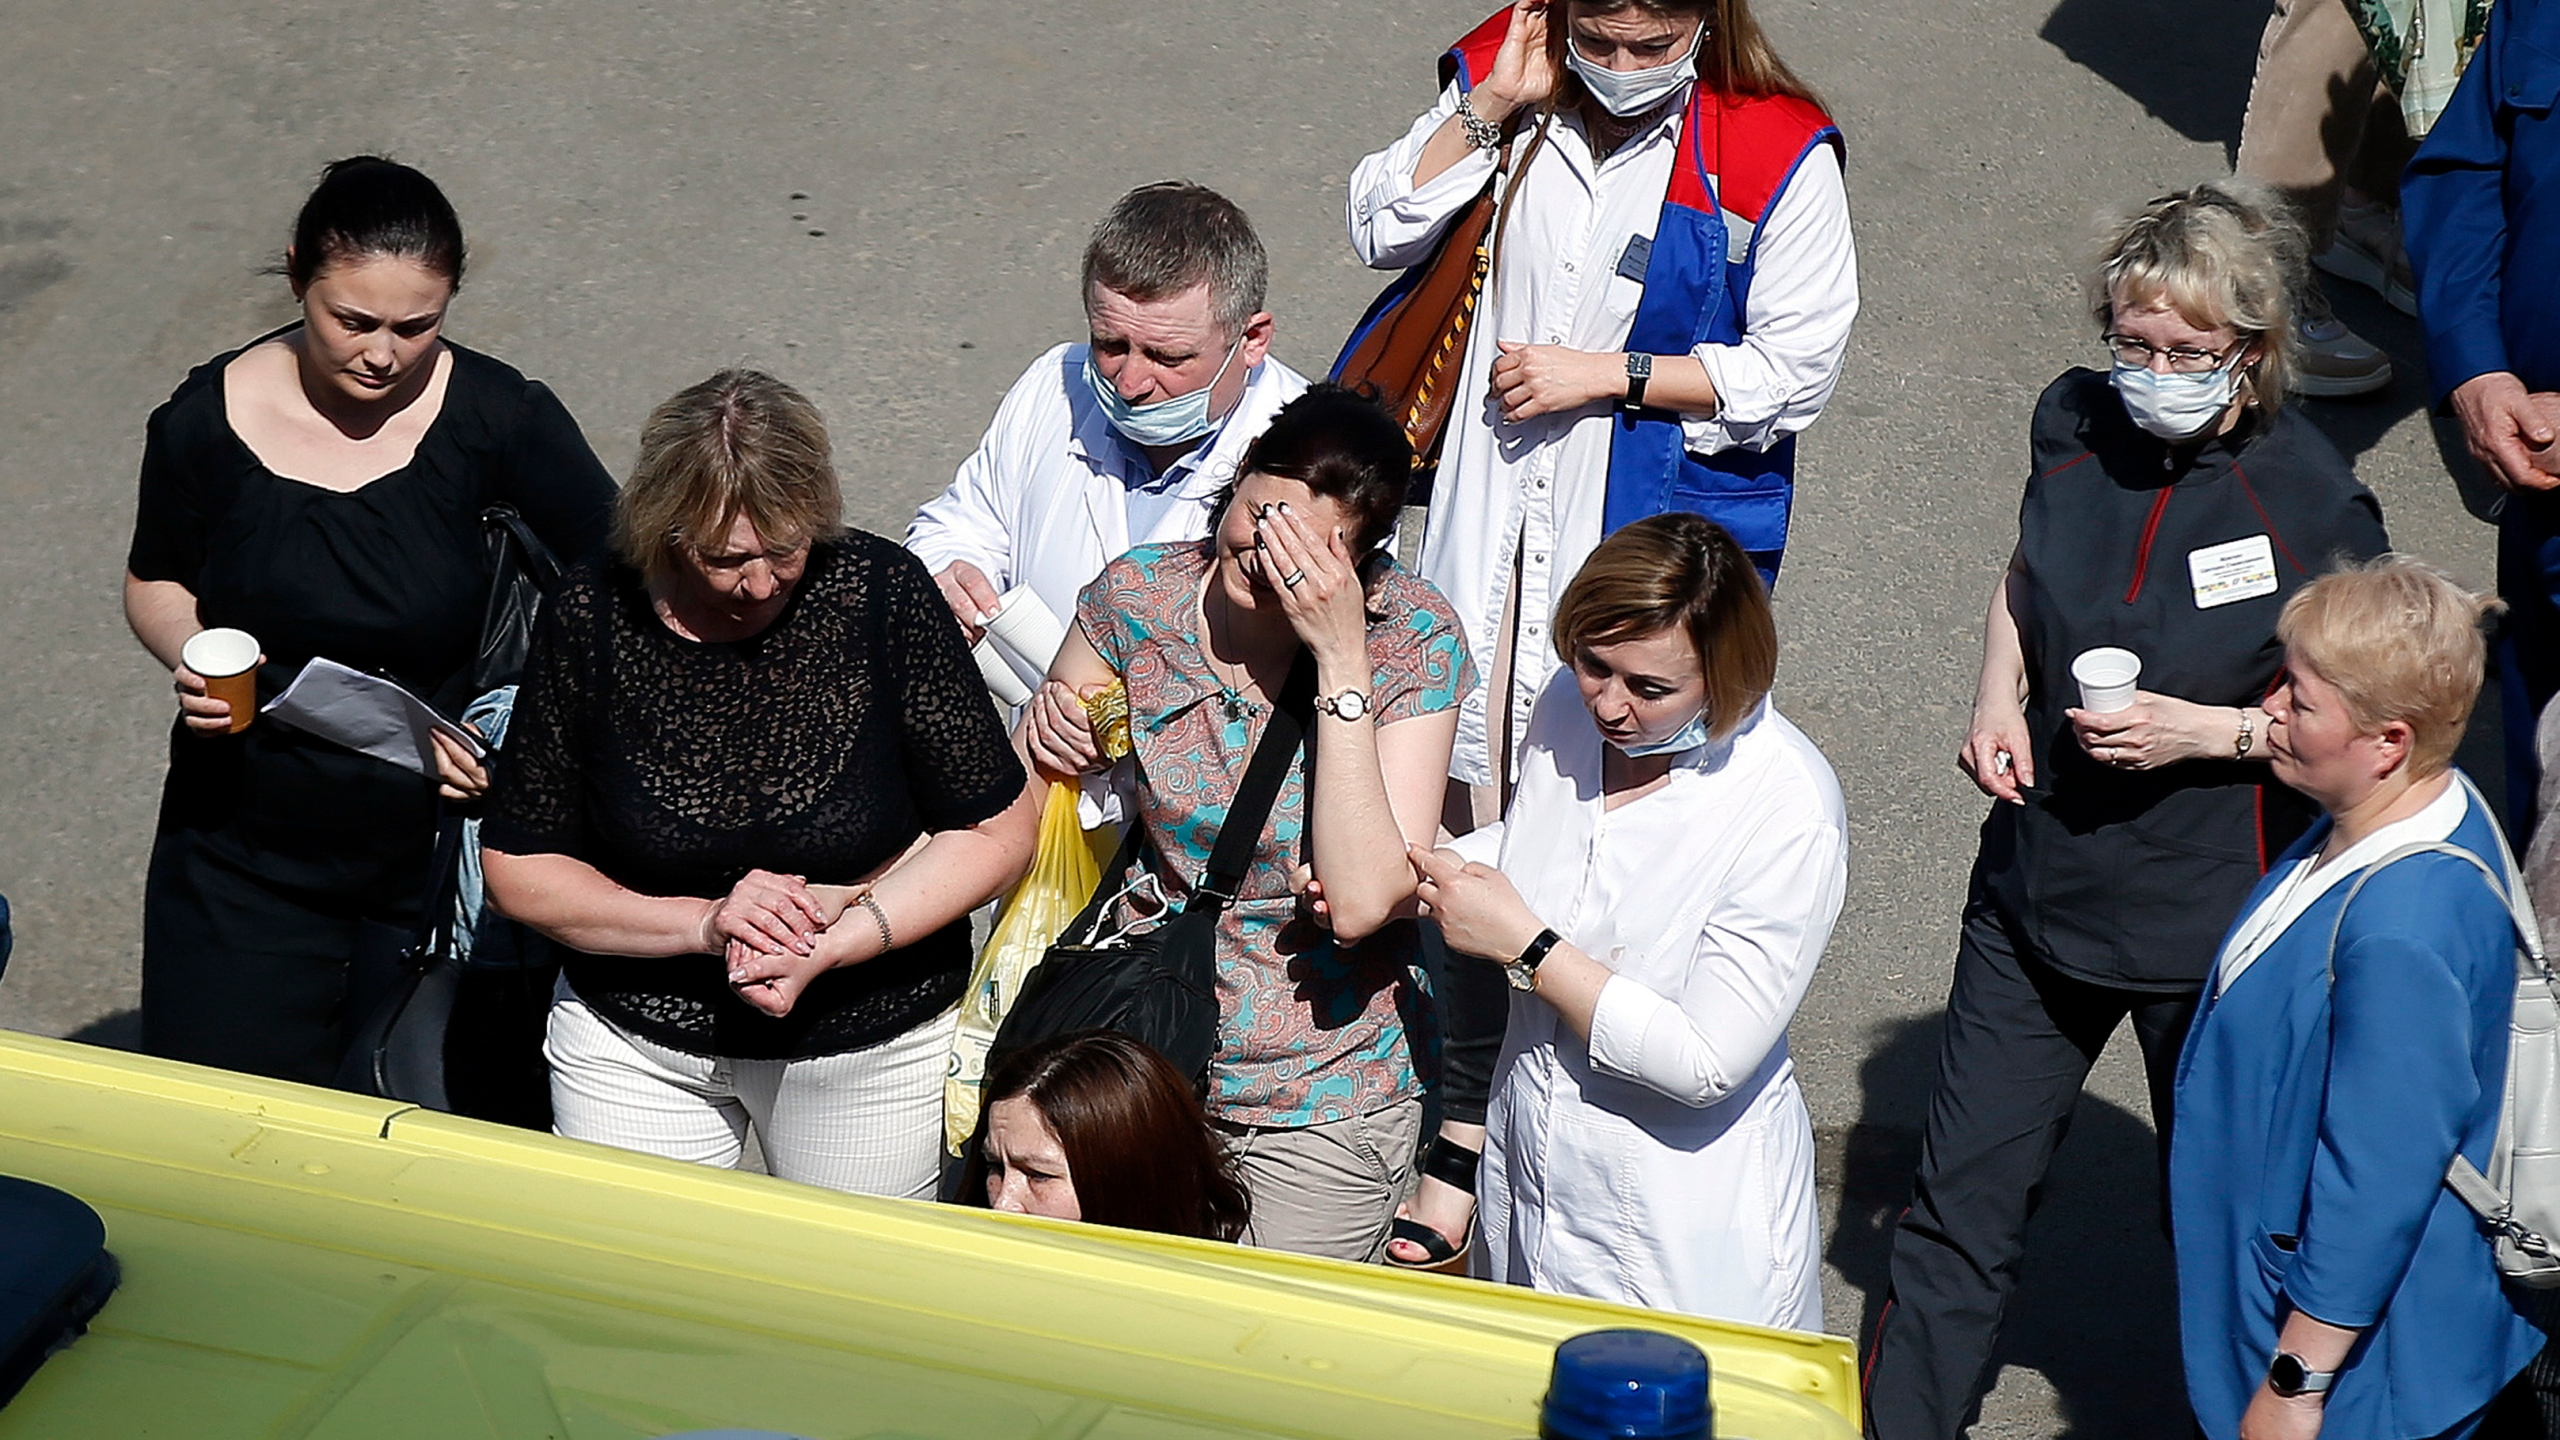 Medics and friends help a woman board an ambulance at a school after a shooting in Kazan, Russia, Tuesday, May 11, 2021.